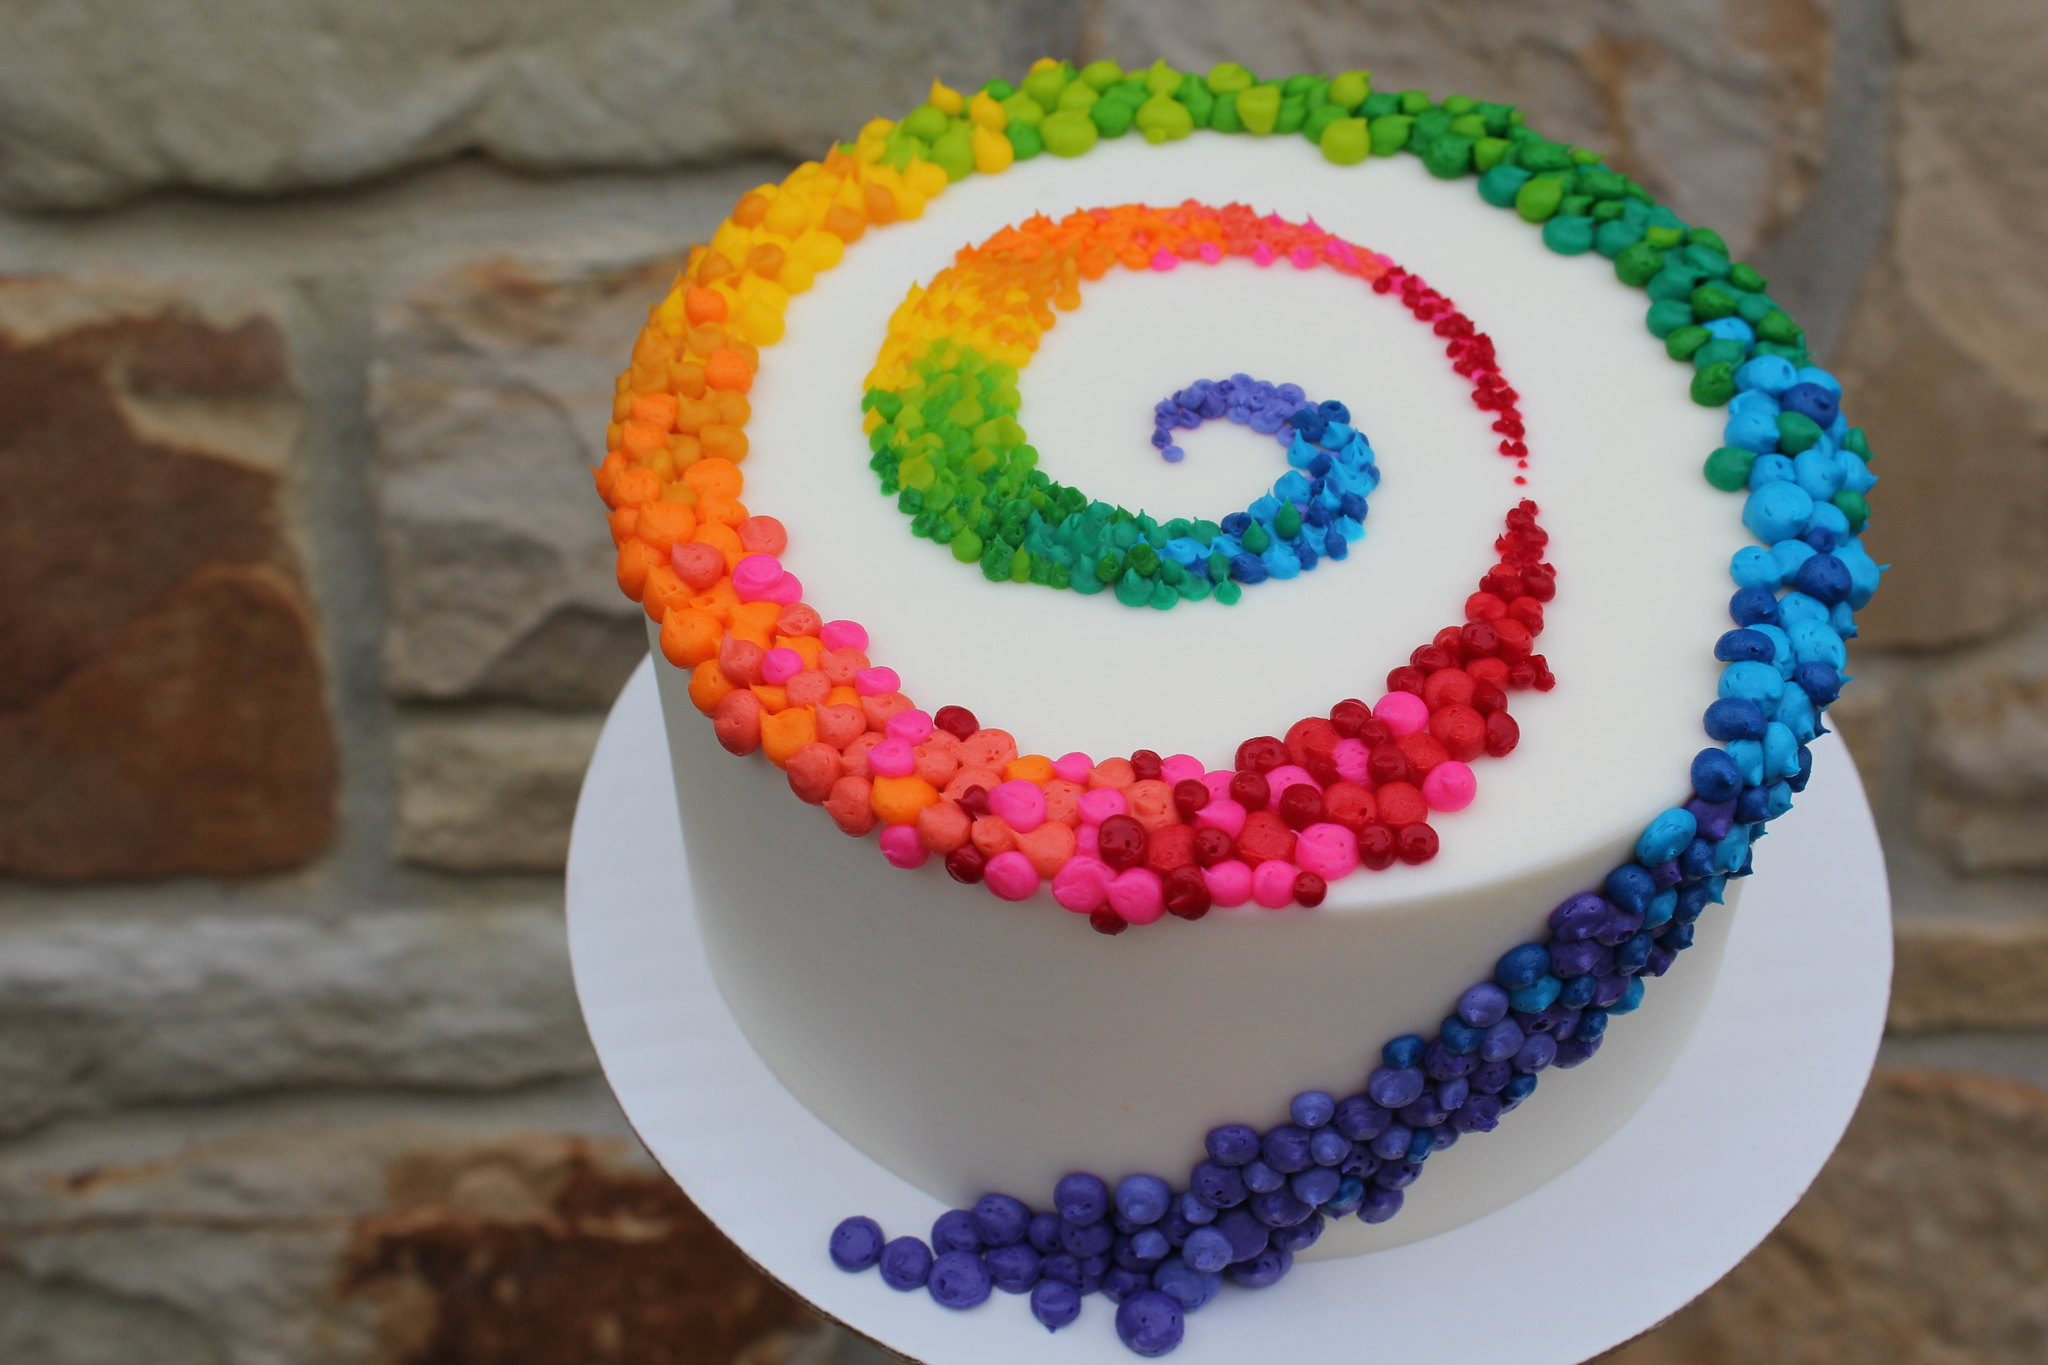 Colorful Patterned Swirl on White Cake: Birthday Cakes, Colorful Cakes